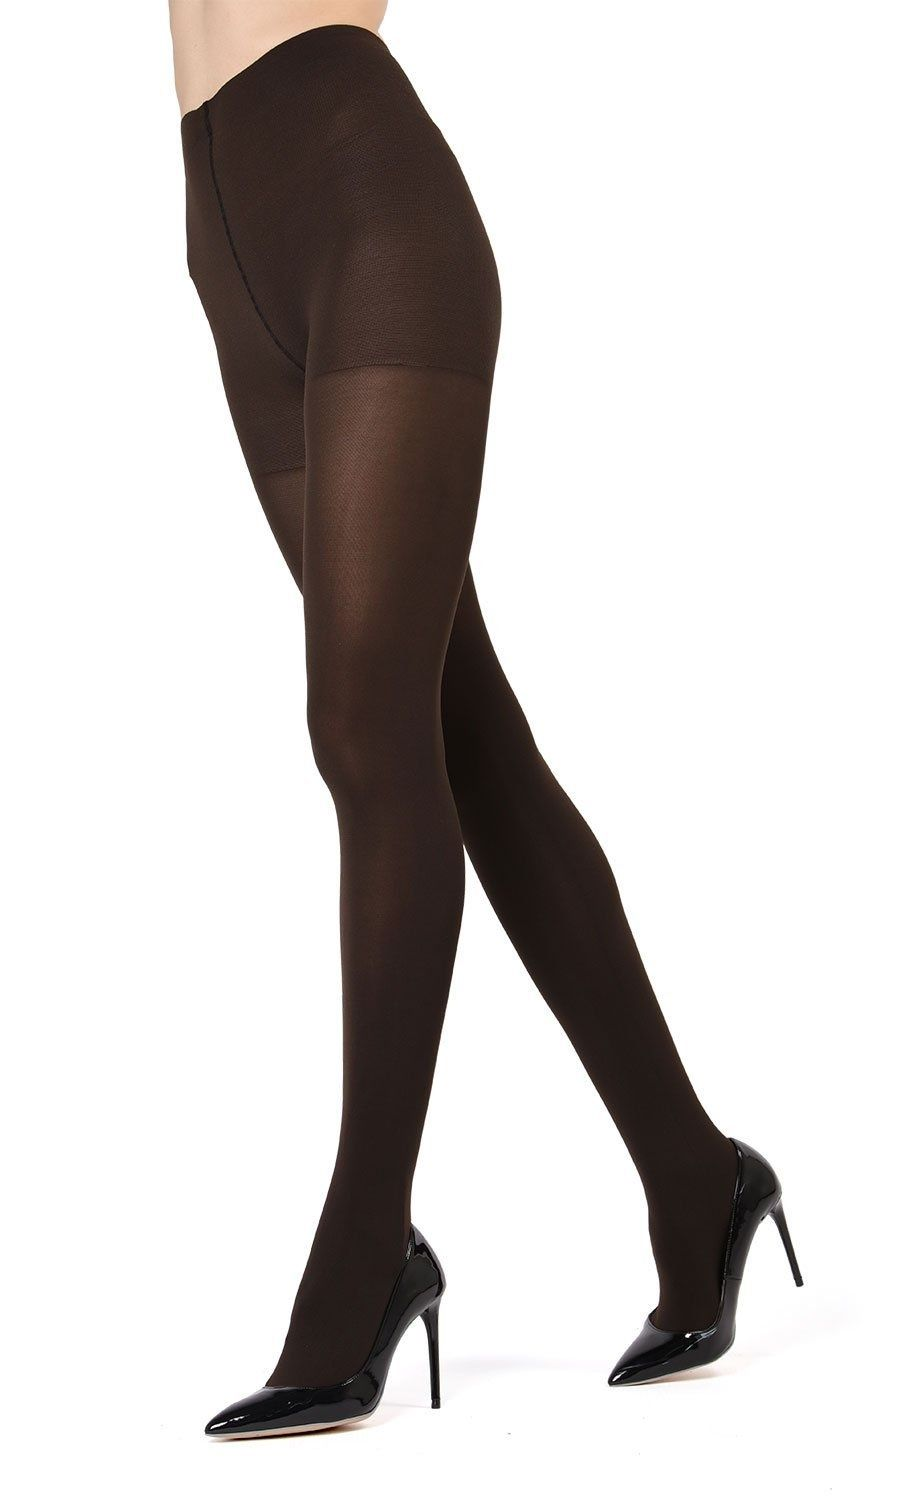 dea6f9eeb62 MeMoi Completely Opaque Control Top Tights MeMoi Premium Hosiery  Small Medium   Brown MO 336 Control